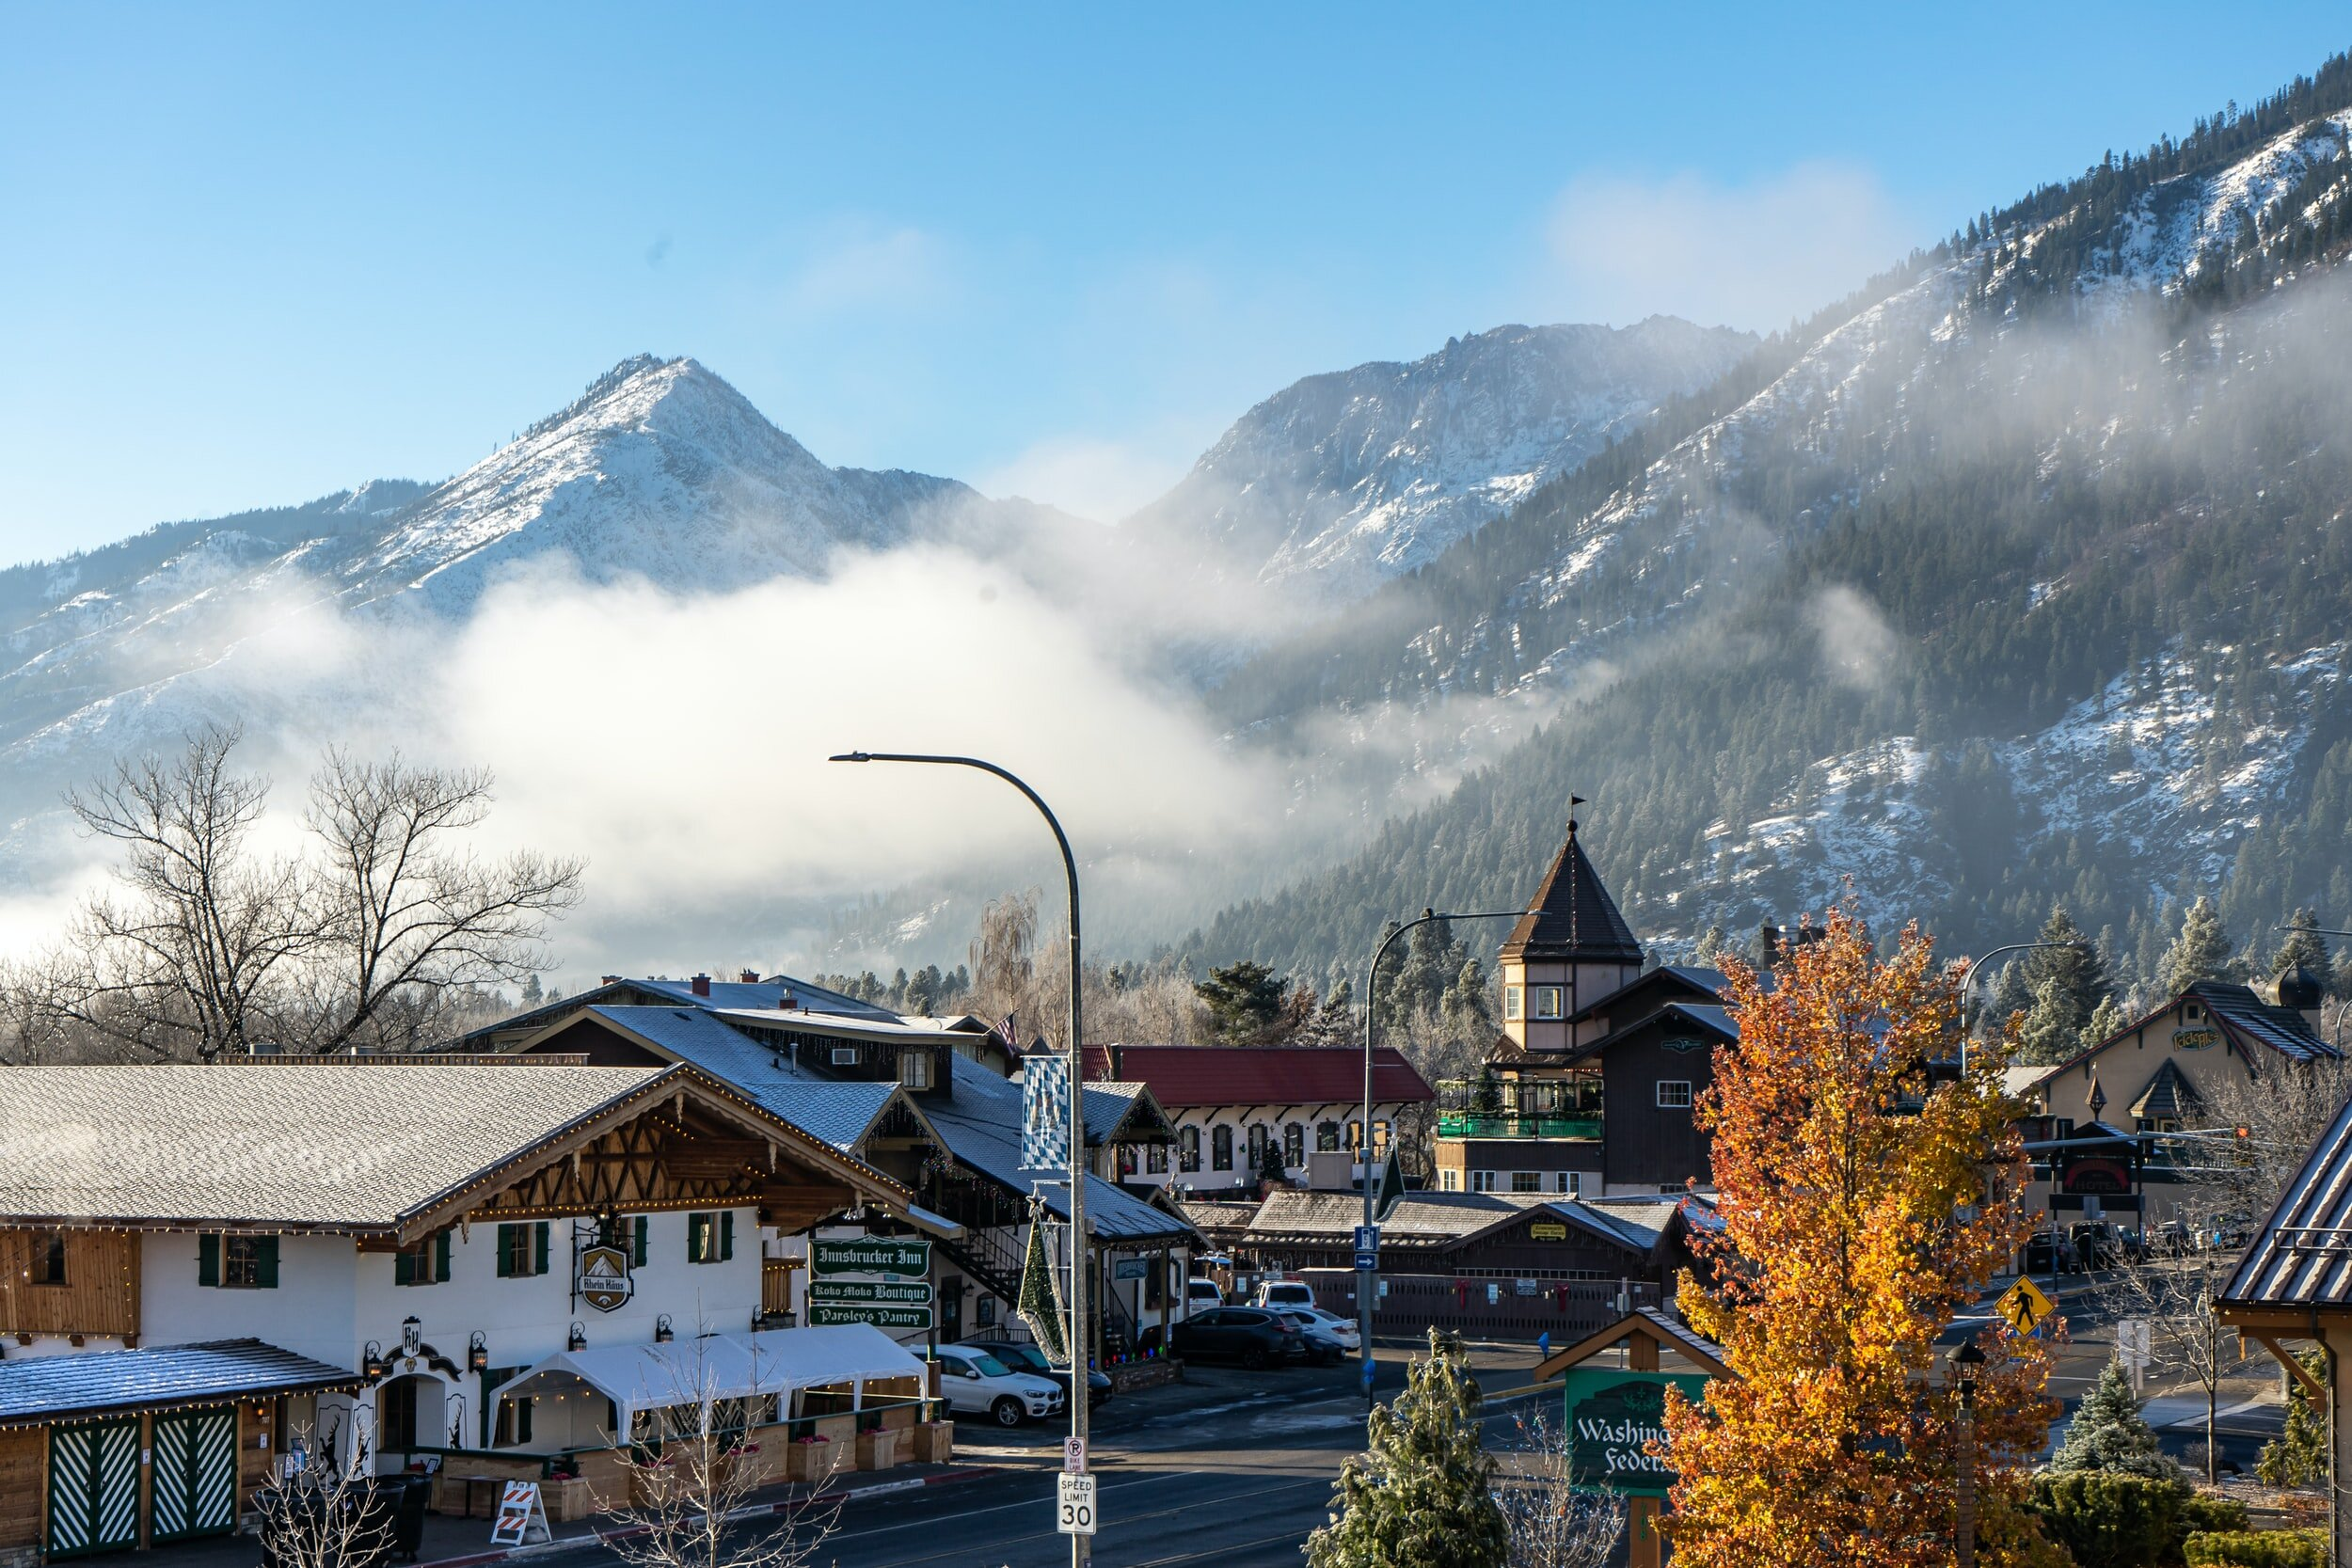 In the winter time downtown Leavenworth feels like a holiday snow globe!